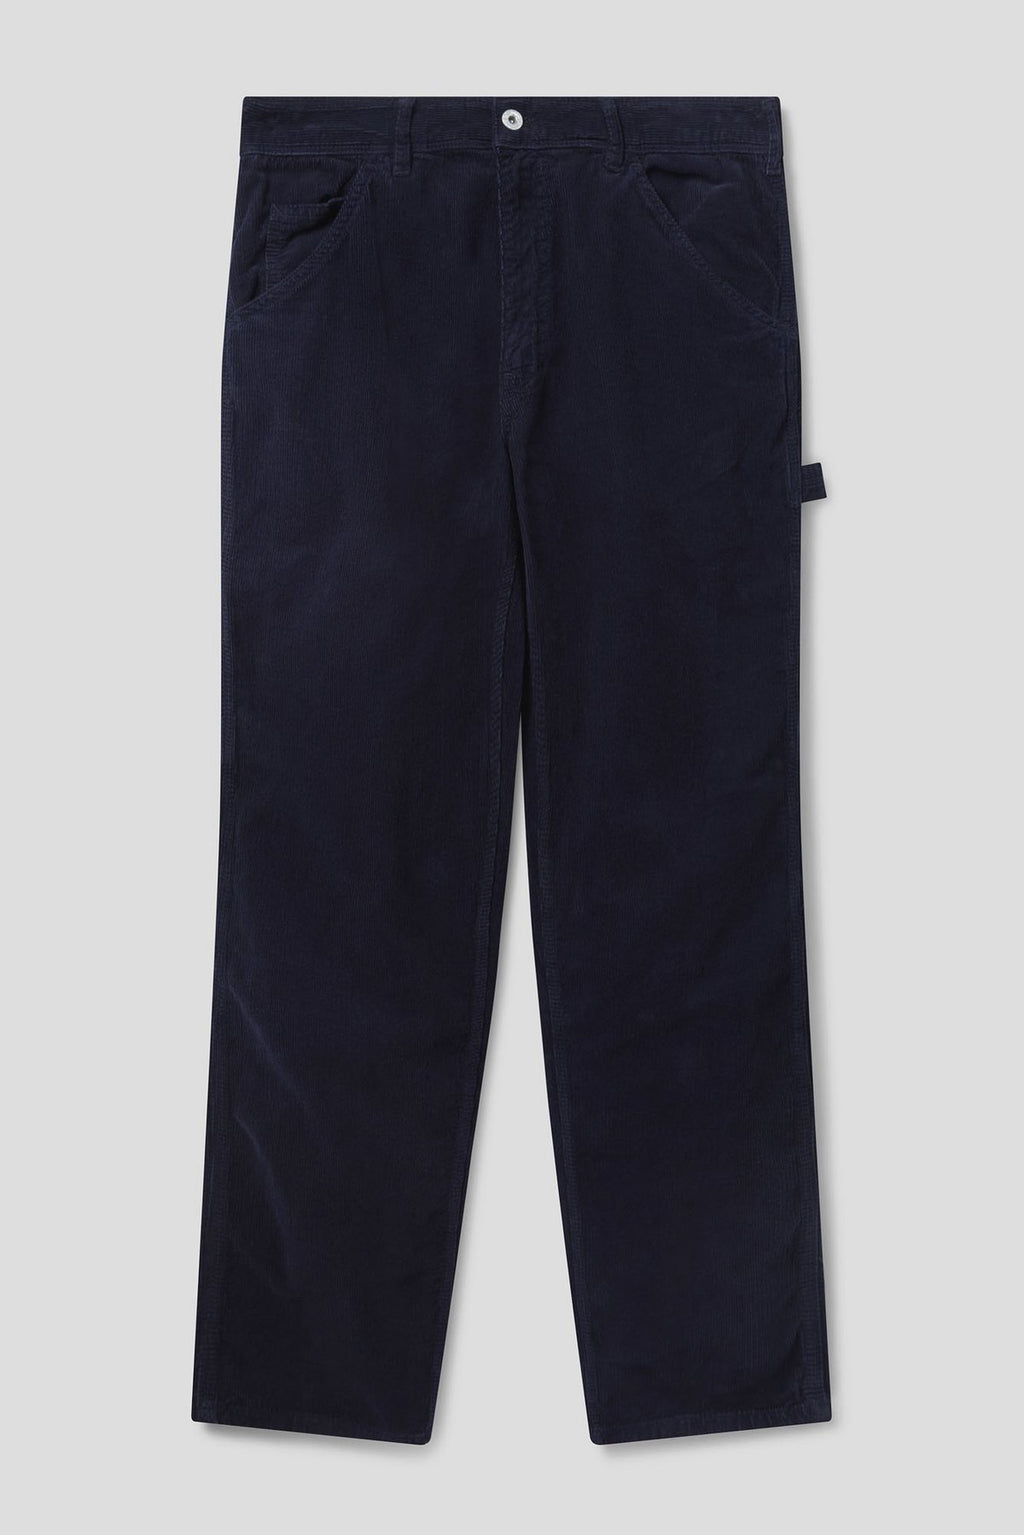 80's Painter Pant - Navy Cord